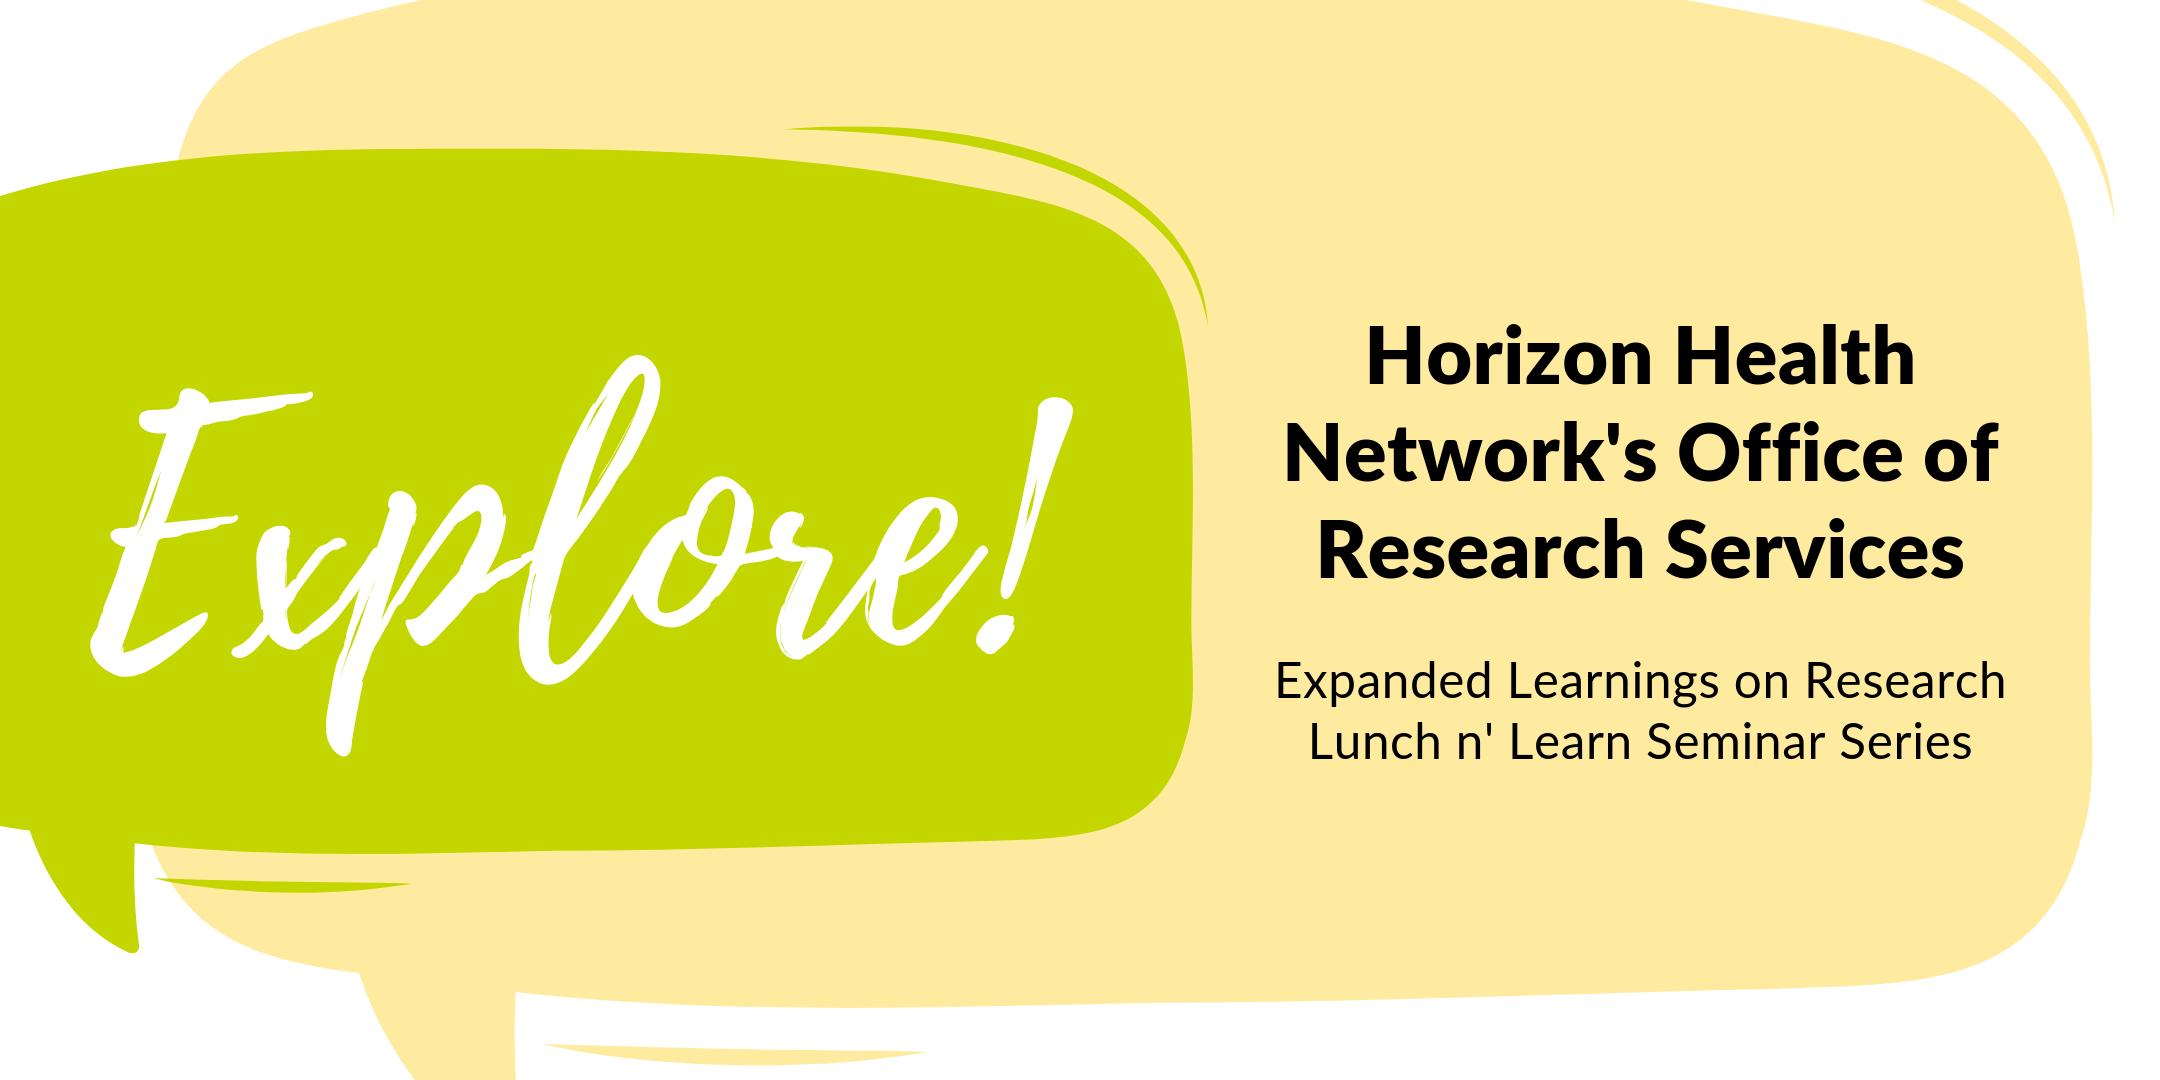 How can I start engaging patients in my research as partners? (Explore! February 2020)